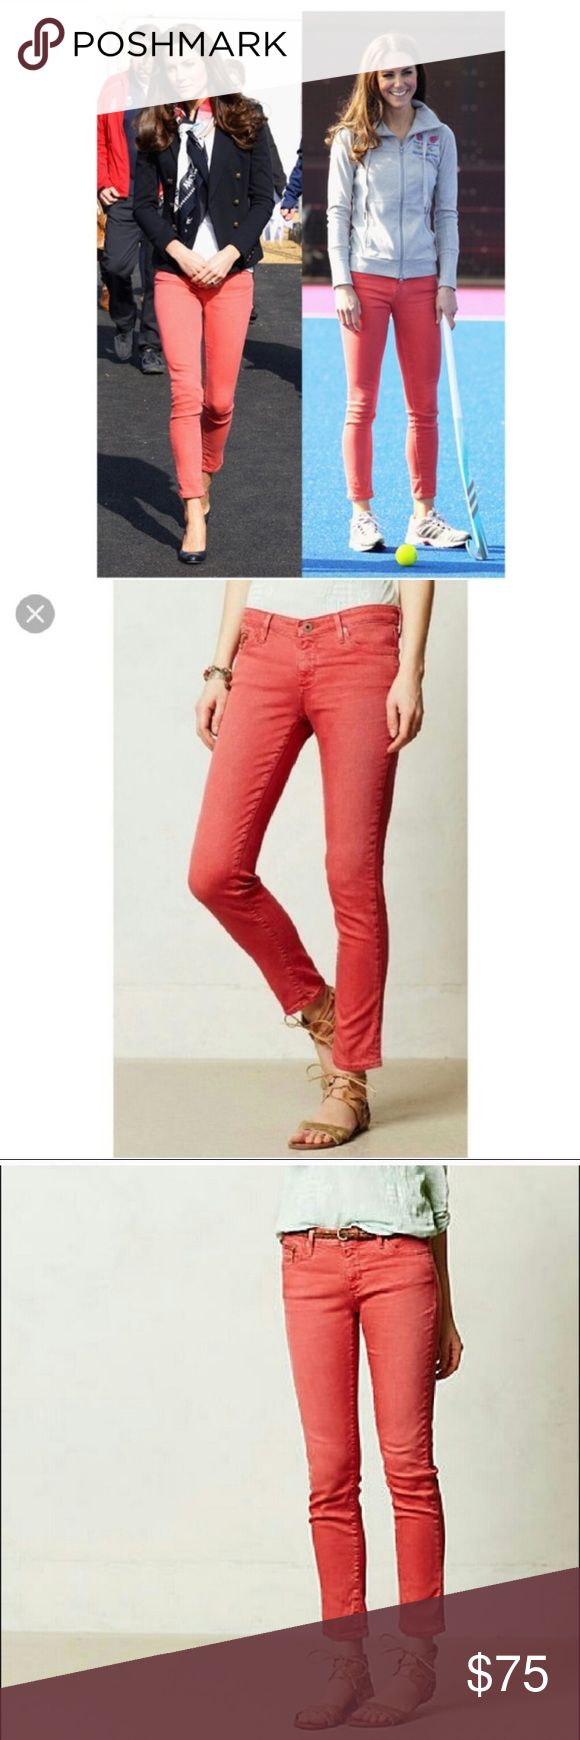 Adriano Goldschmied Red Stevie Ankle Jean Made in the USA and as seen on multiple celebs. :) These have stretch and feel amazing. Great condition, except for a few tiny spots on back left leg, but not noticeable at all when on! Ag Adriano Goldschmied Jeans Ankle & Cropped